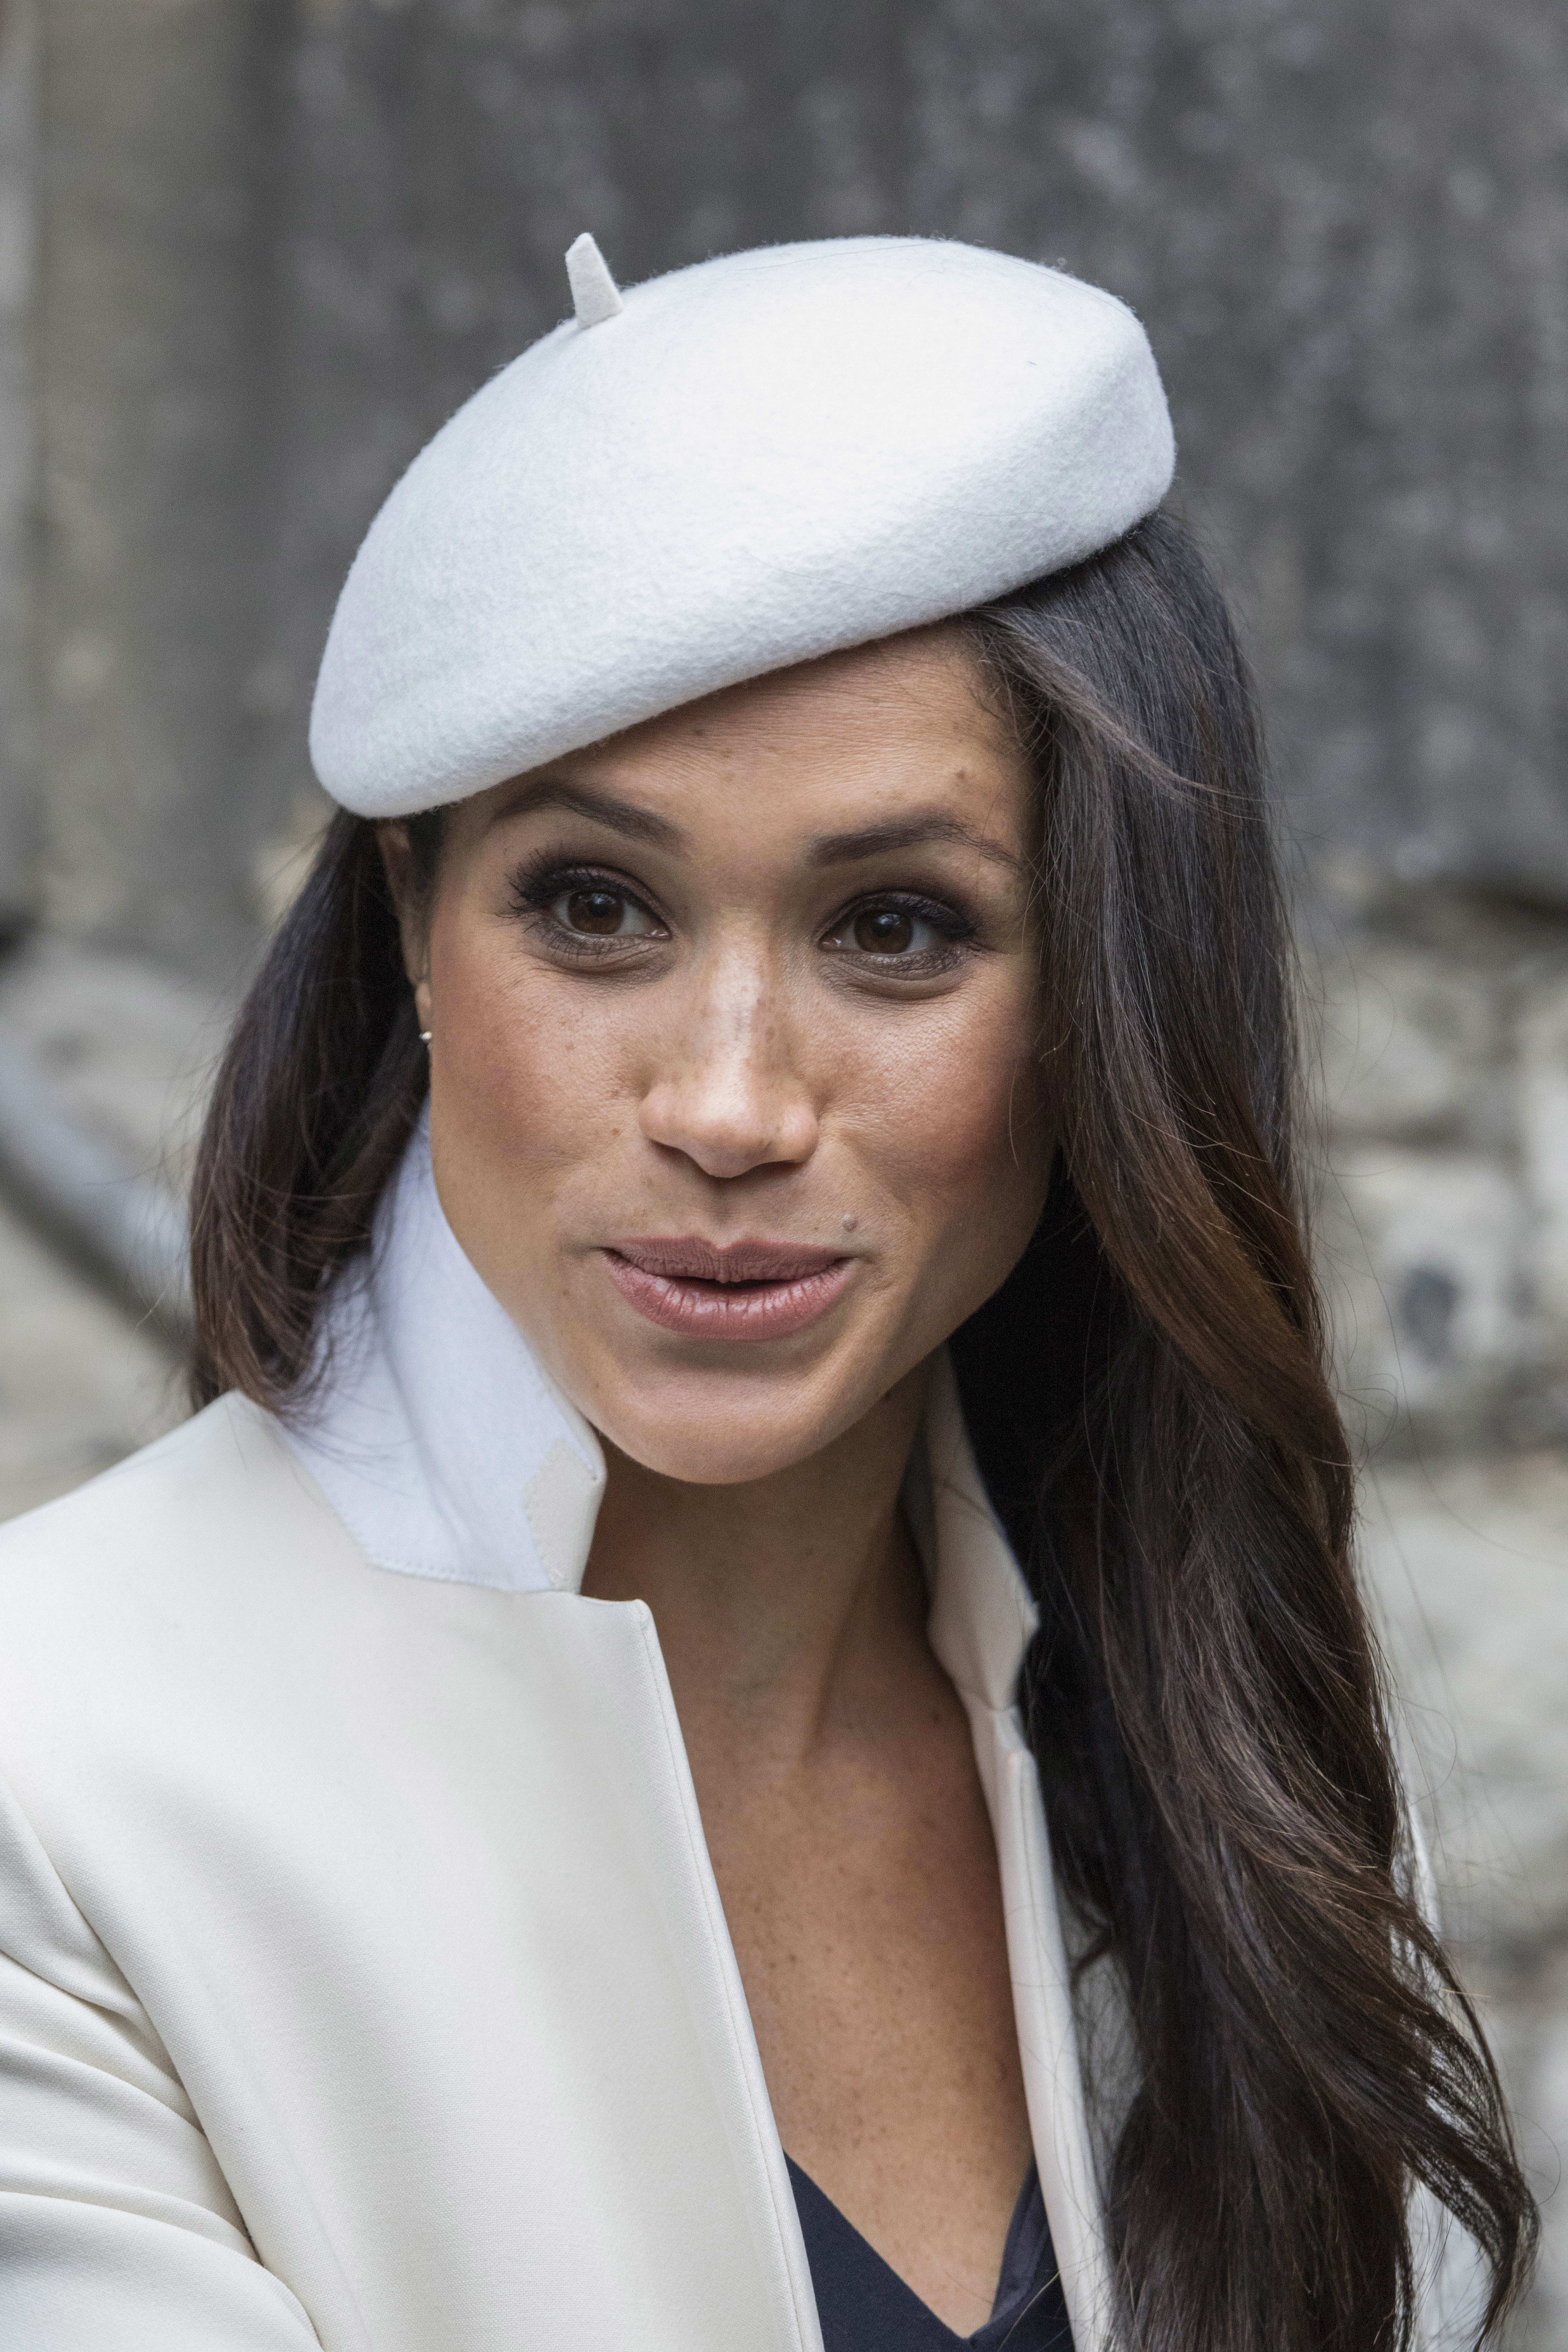 meghan markle nude photos released: are they real? - the hollywood